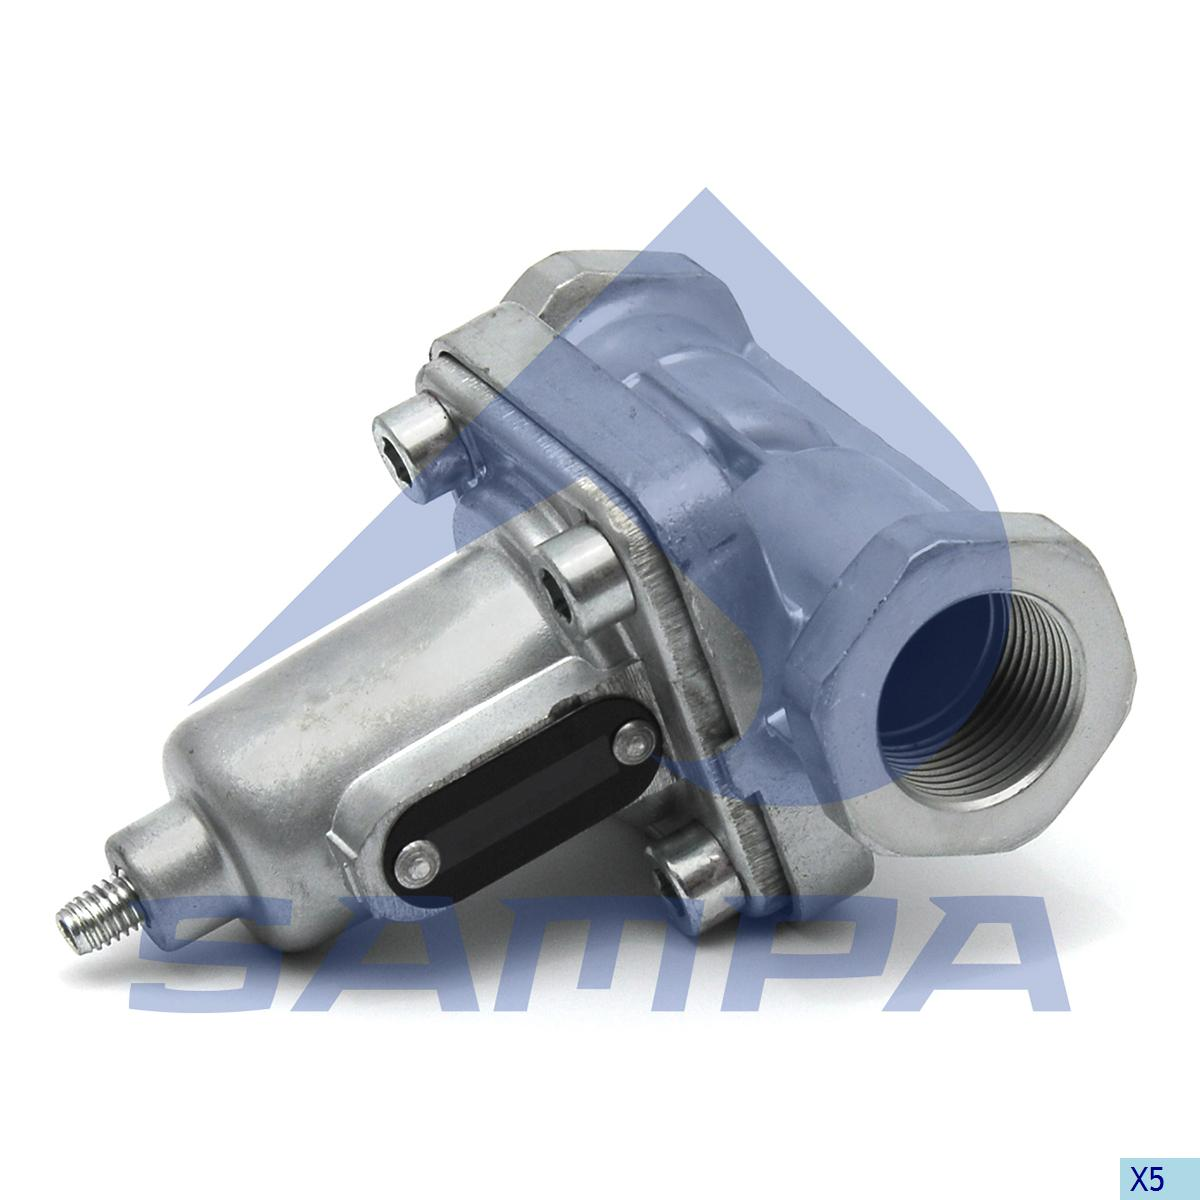 Overflow Valve, Mercedes, Compressed Air System